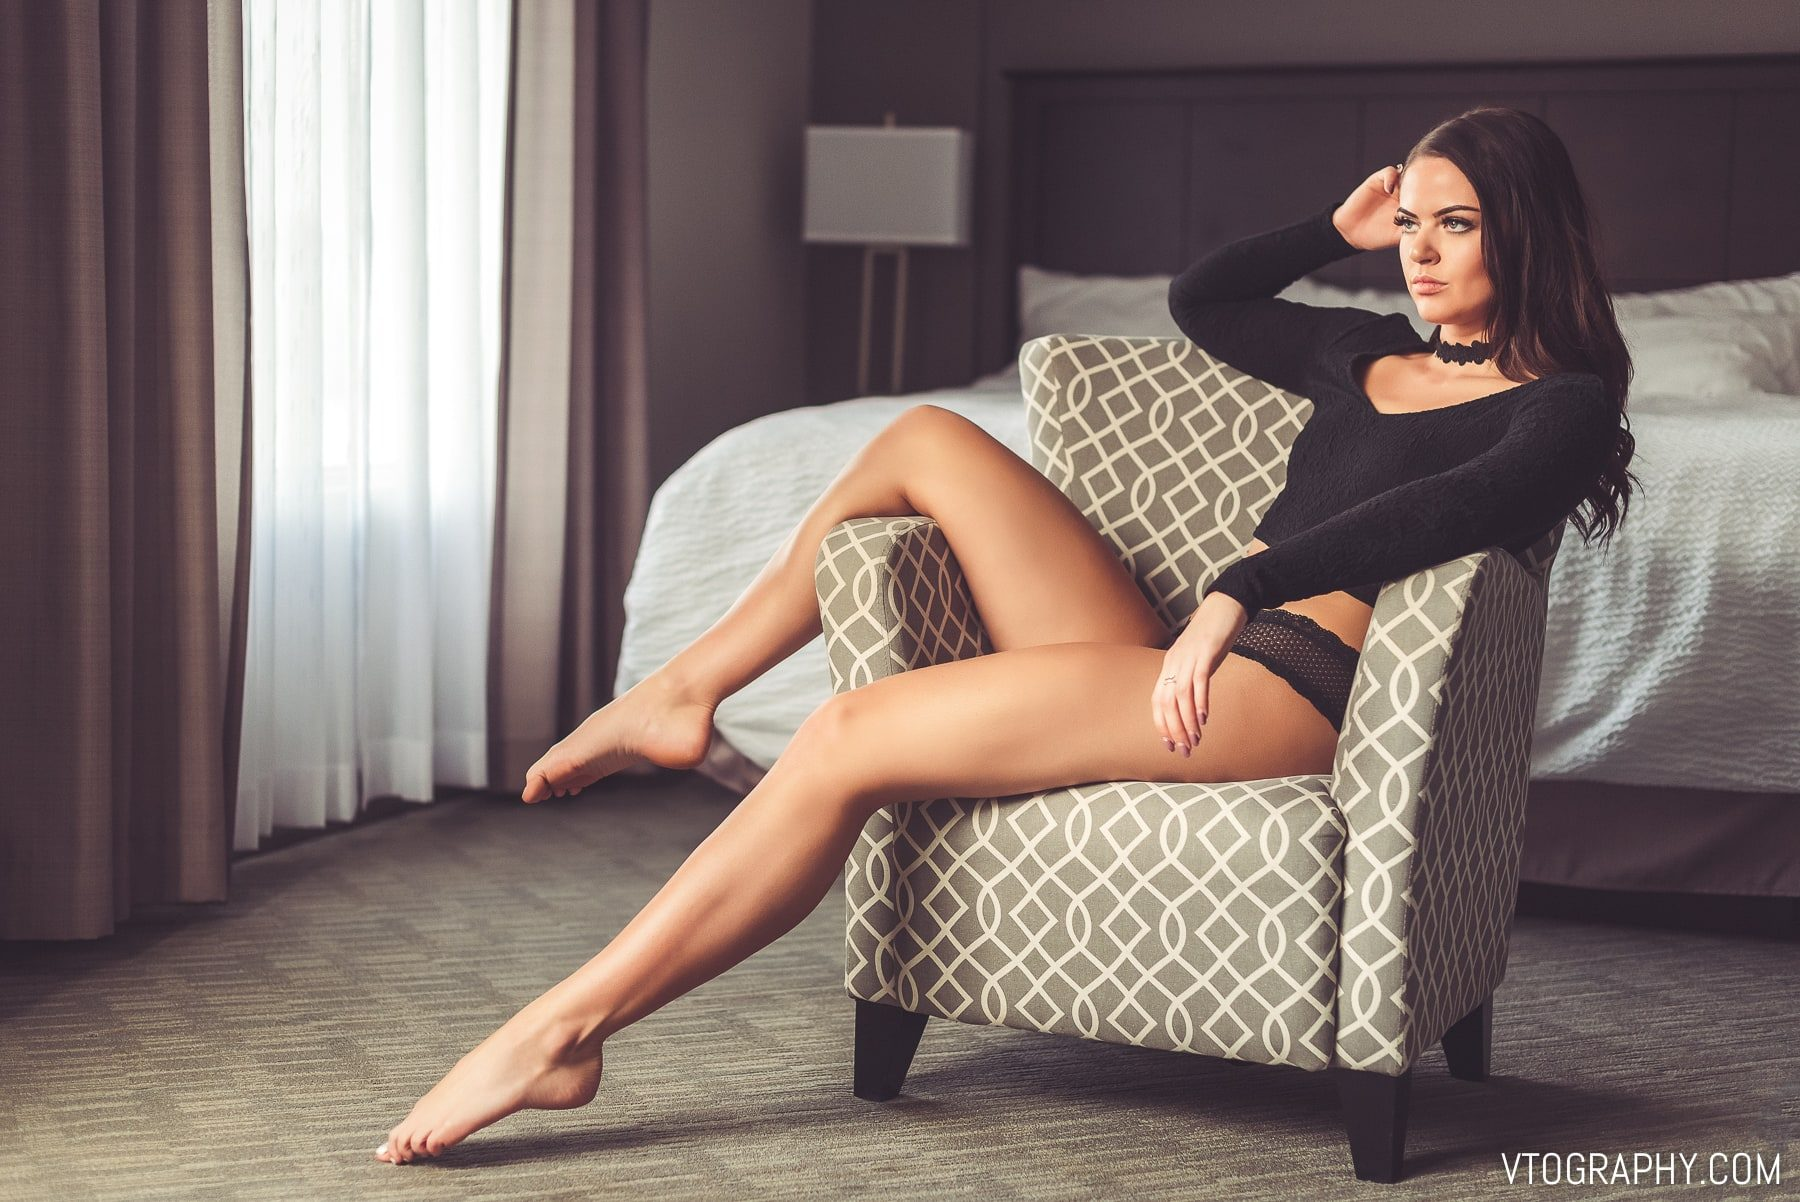 Boudoir photo shoot with model Kelsie